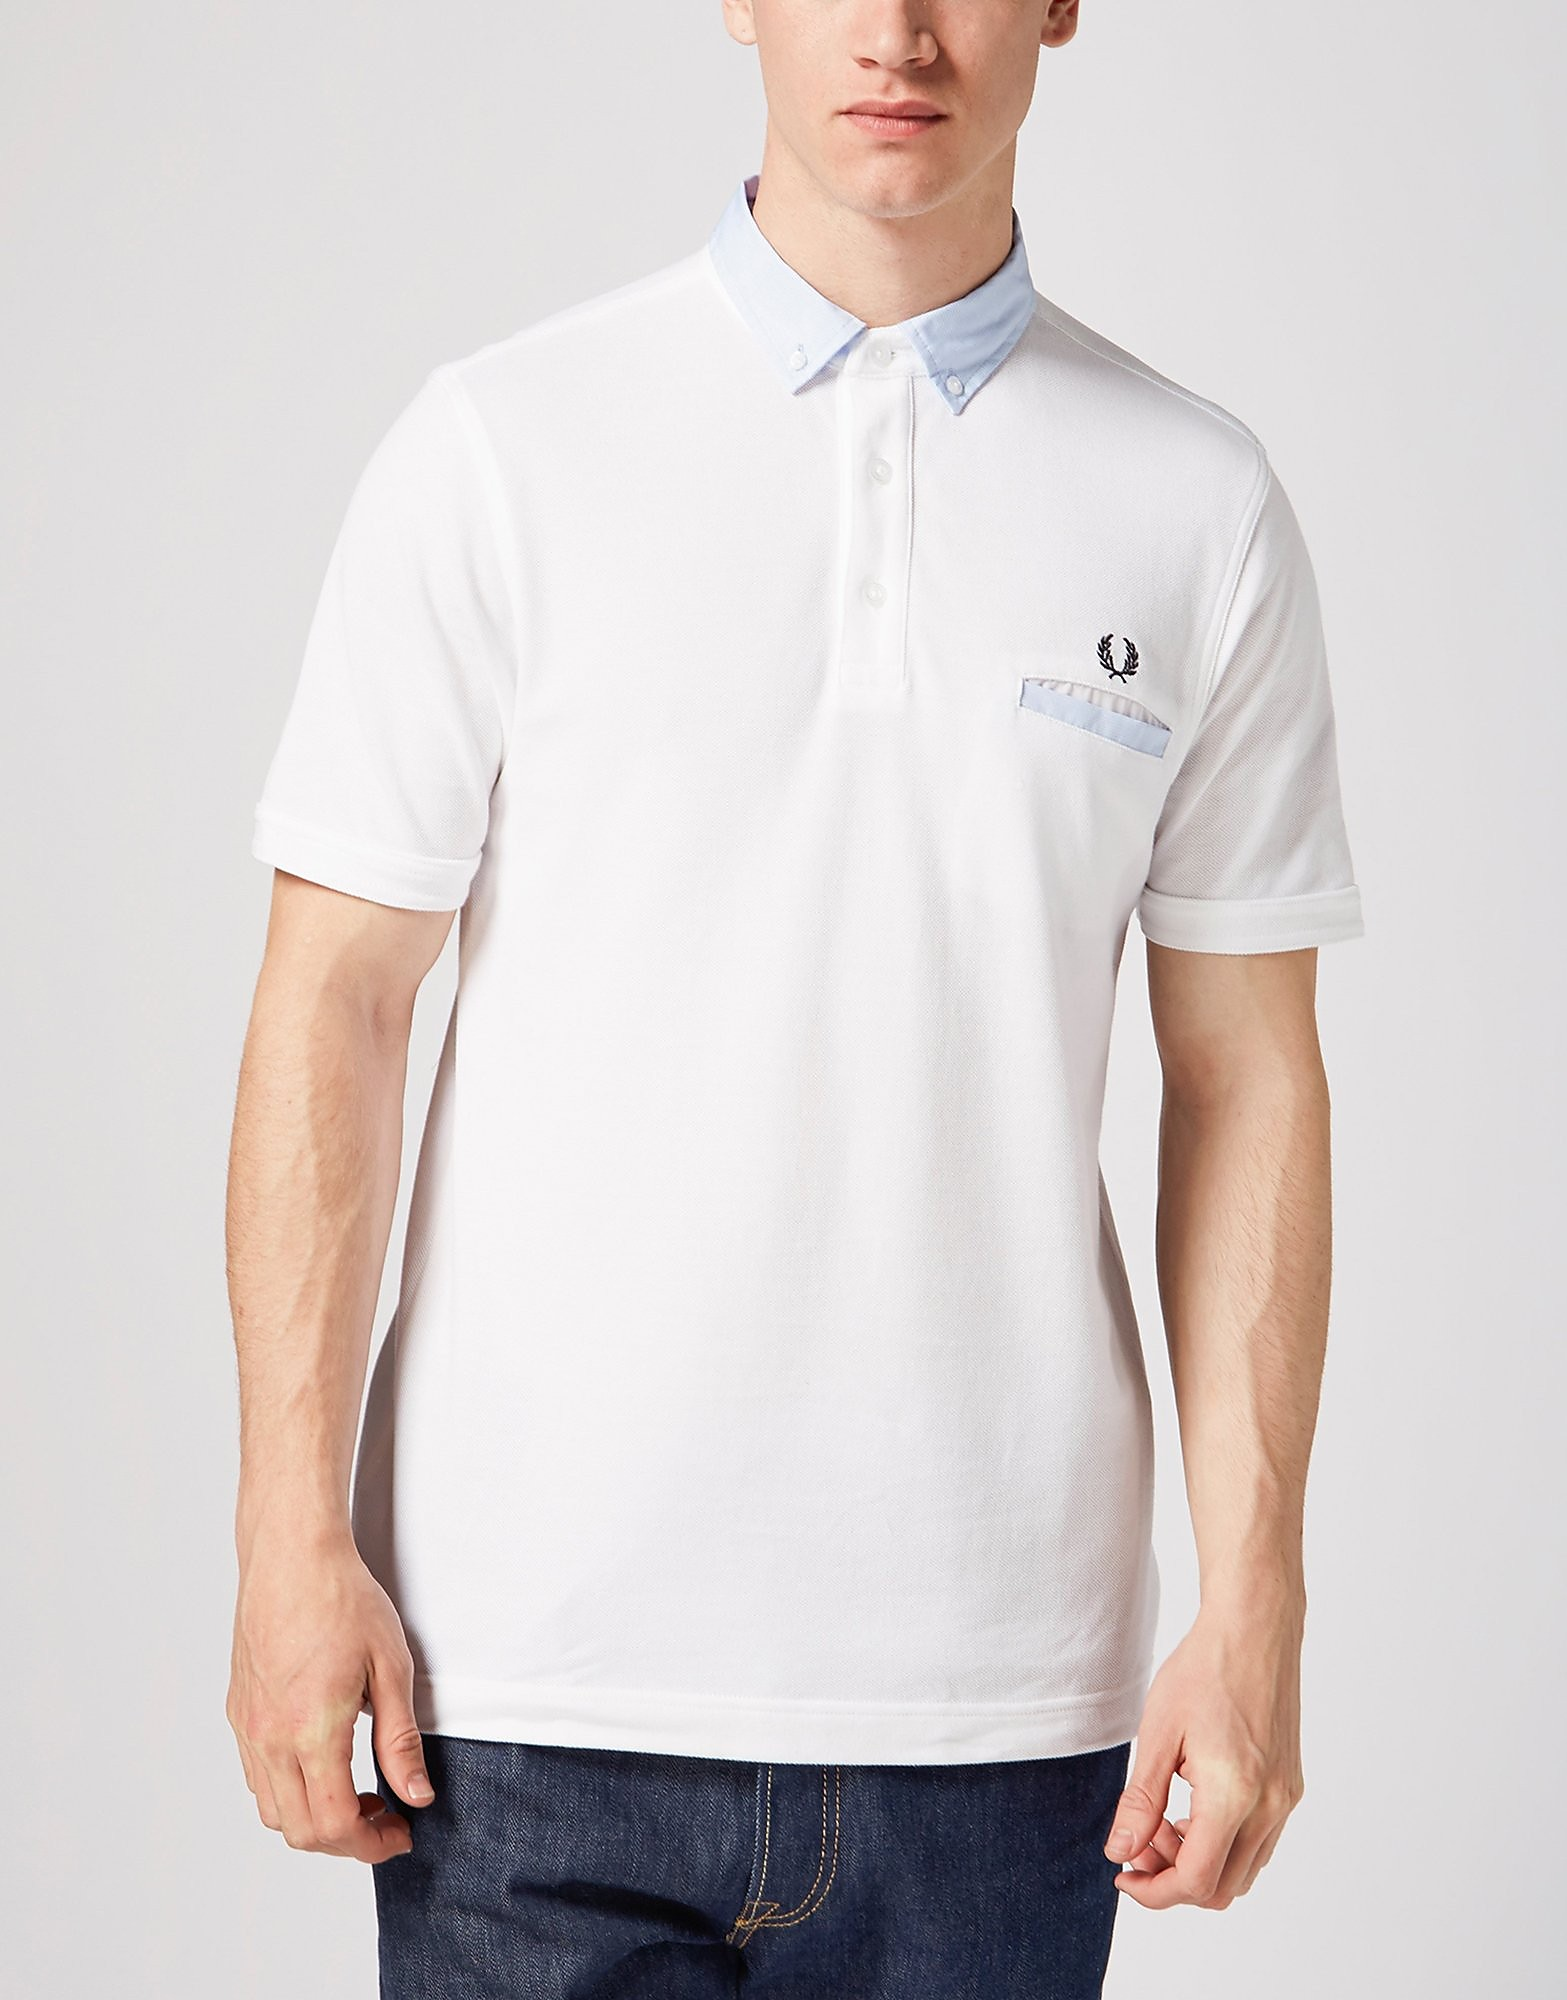 Fred Perry Fabric Trim Polo Shirt  Exclusive  White White